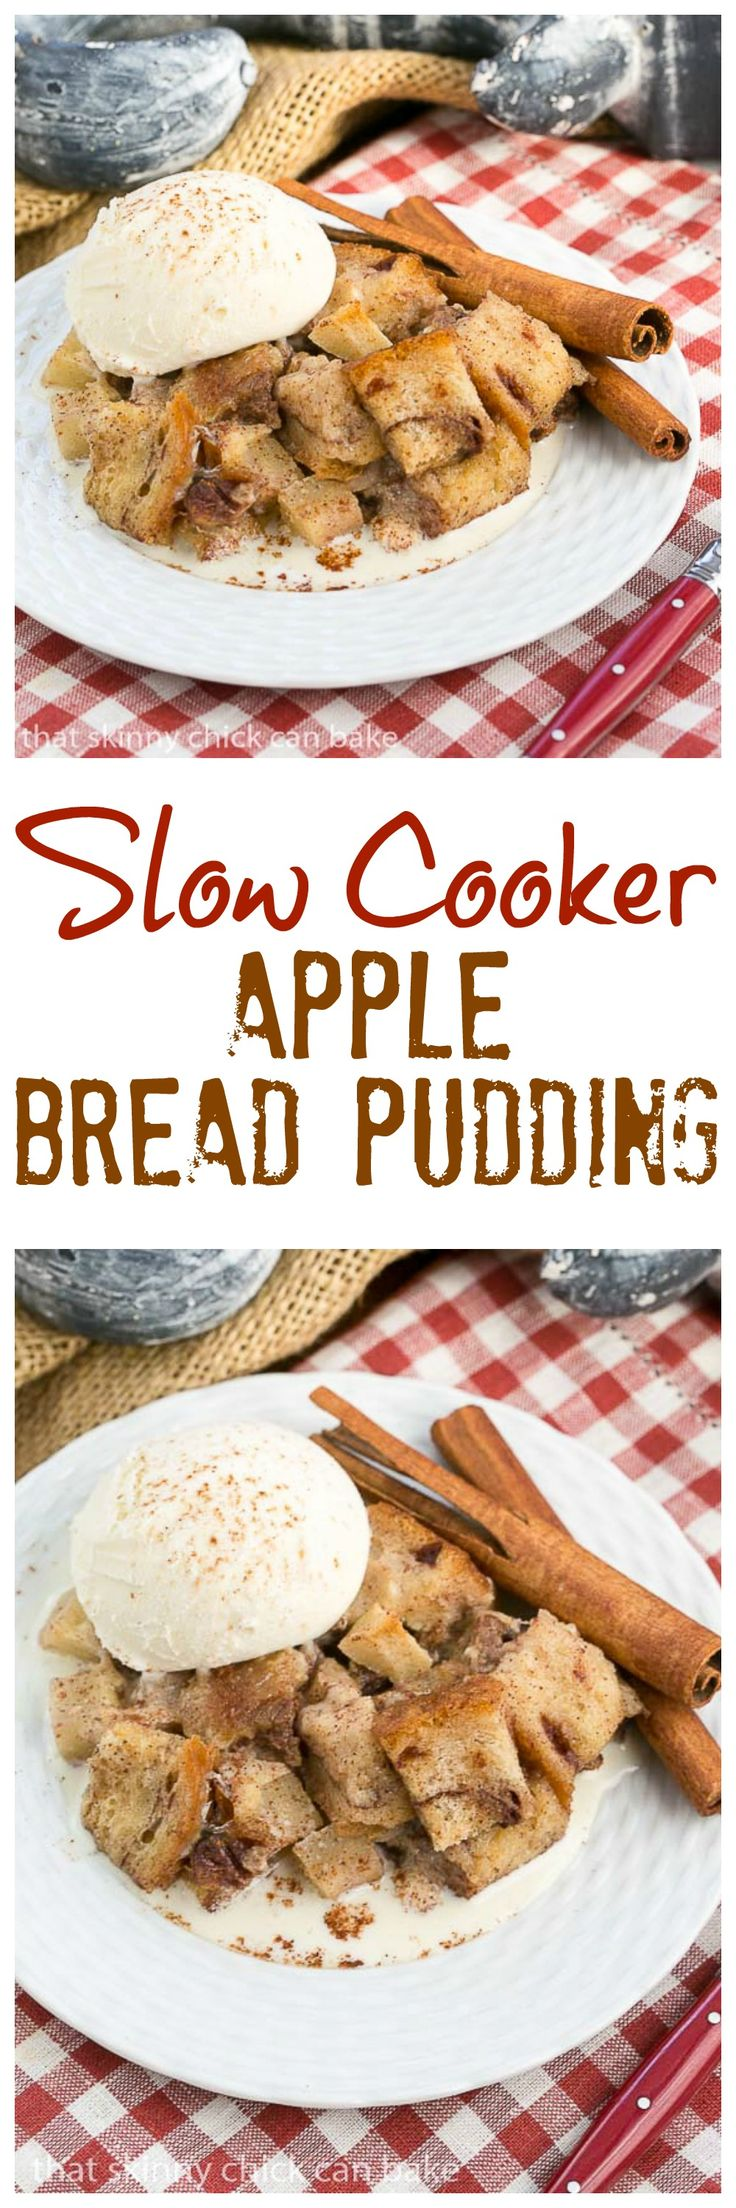 Slow Cooker Apple Pecan Bread Pudding | A nearly hands off way to make a delightful bread pudding dessert @lizzydo